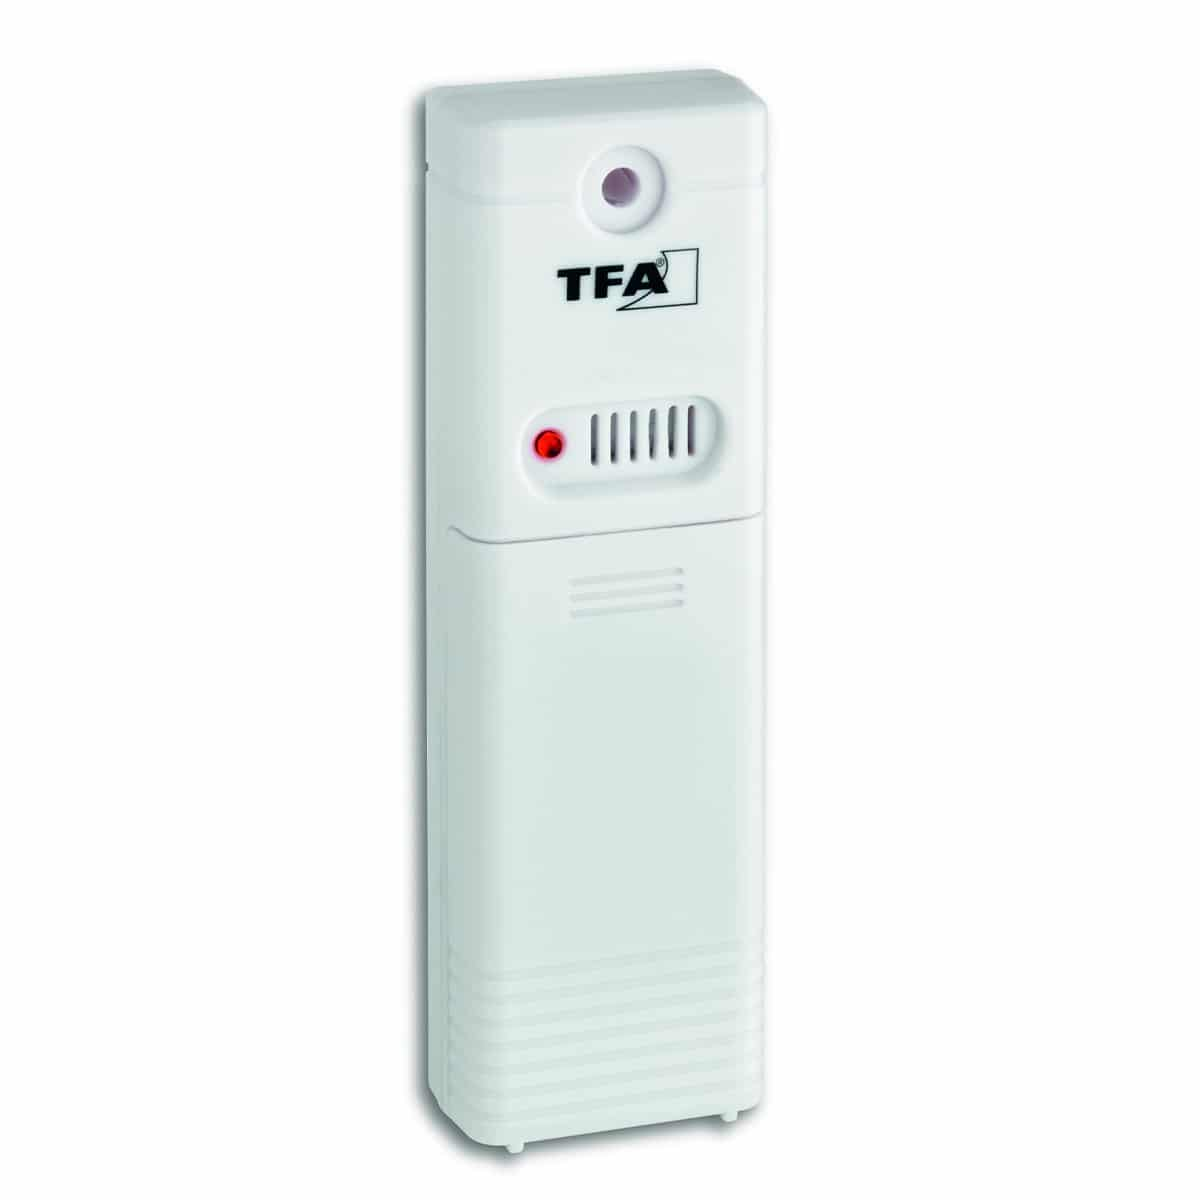 TFA – Wireless thermometer with SPIRA color display